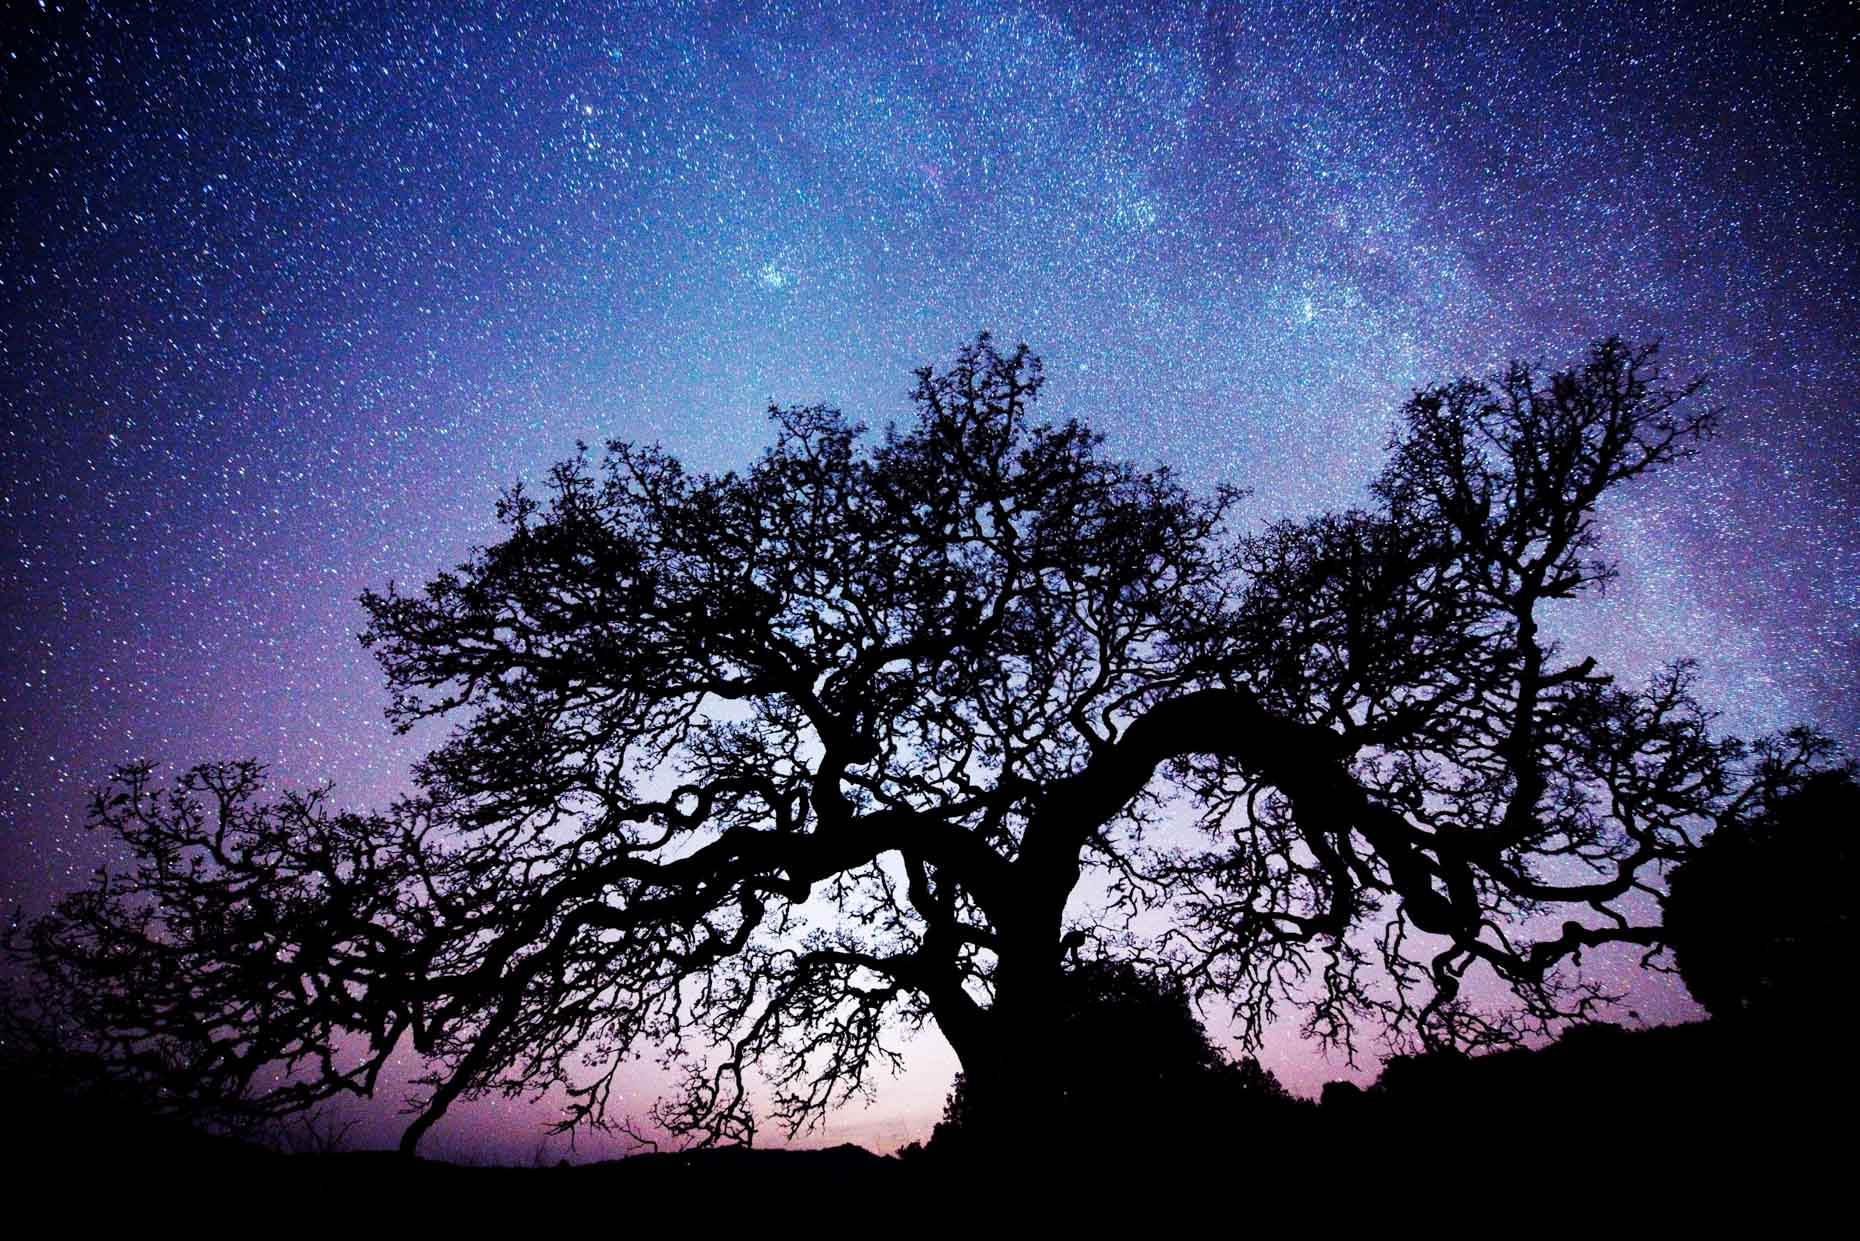 Oak Tree Silhouette At Night - Sonoma, California